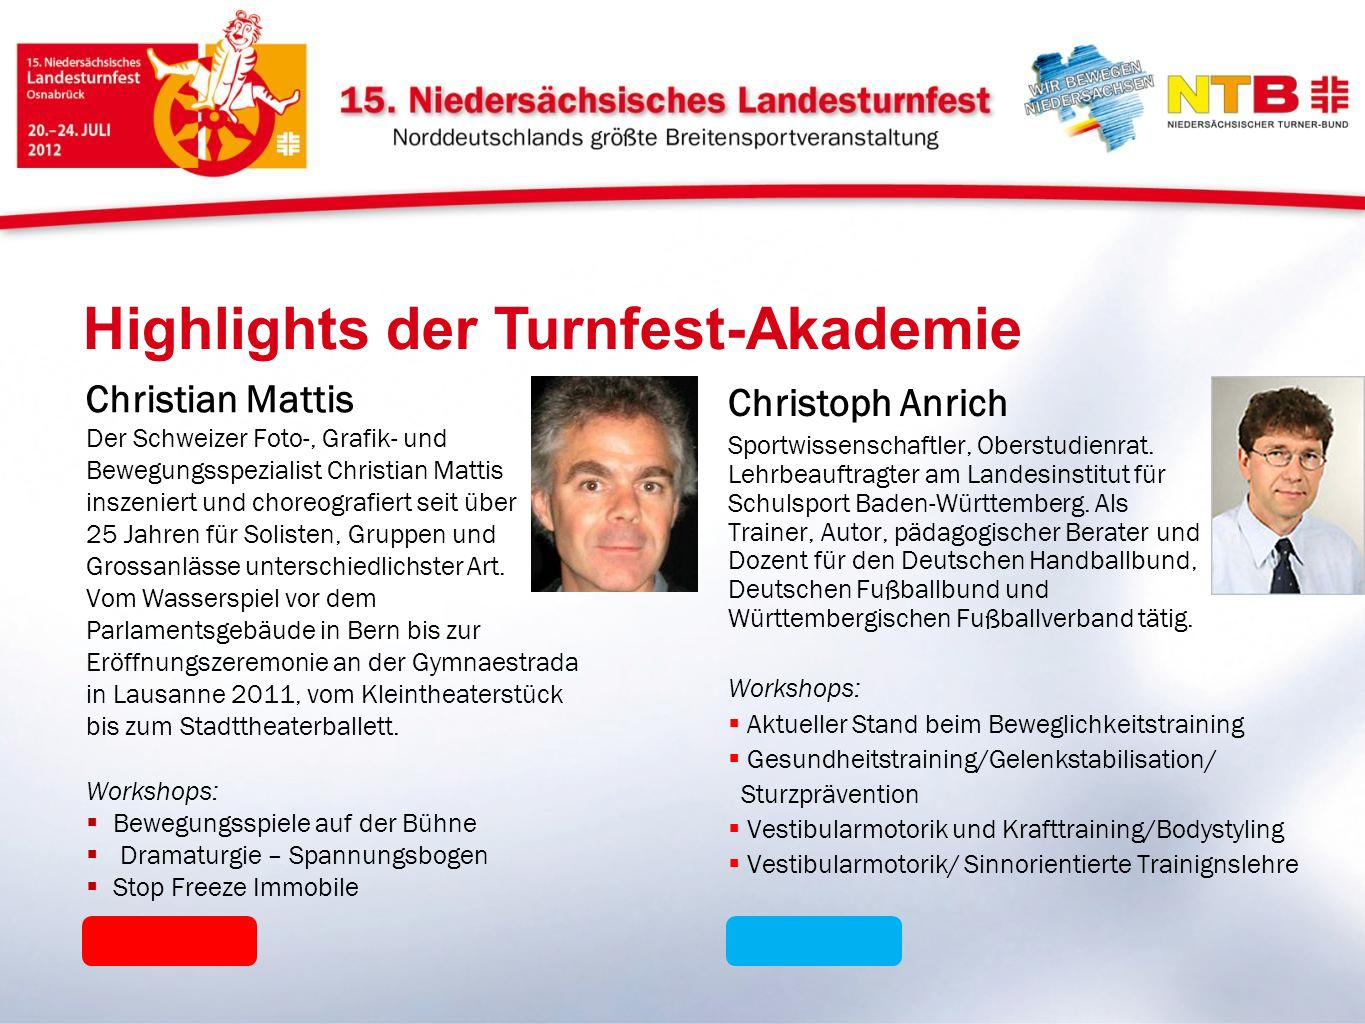 Highlights der Turnfest-Akademie